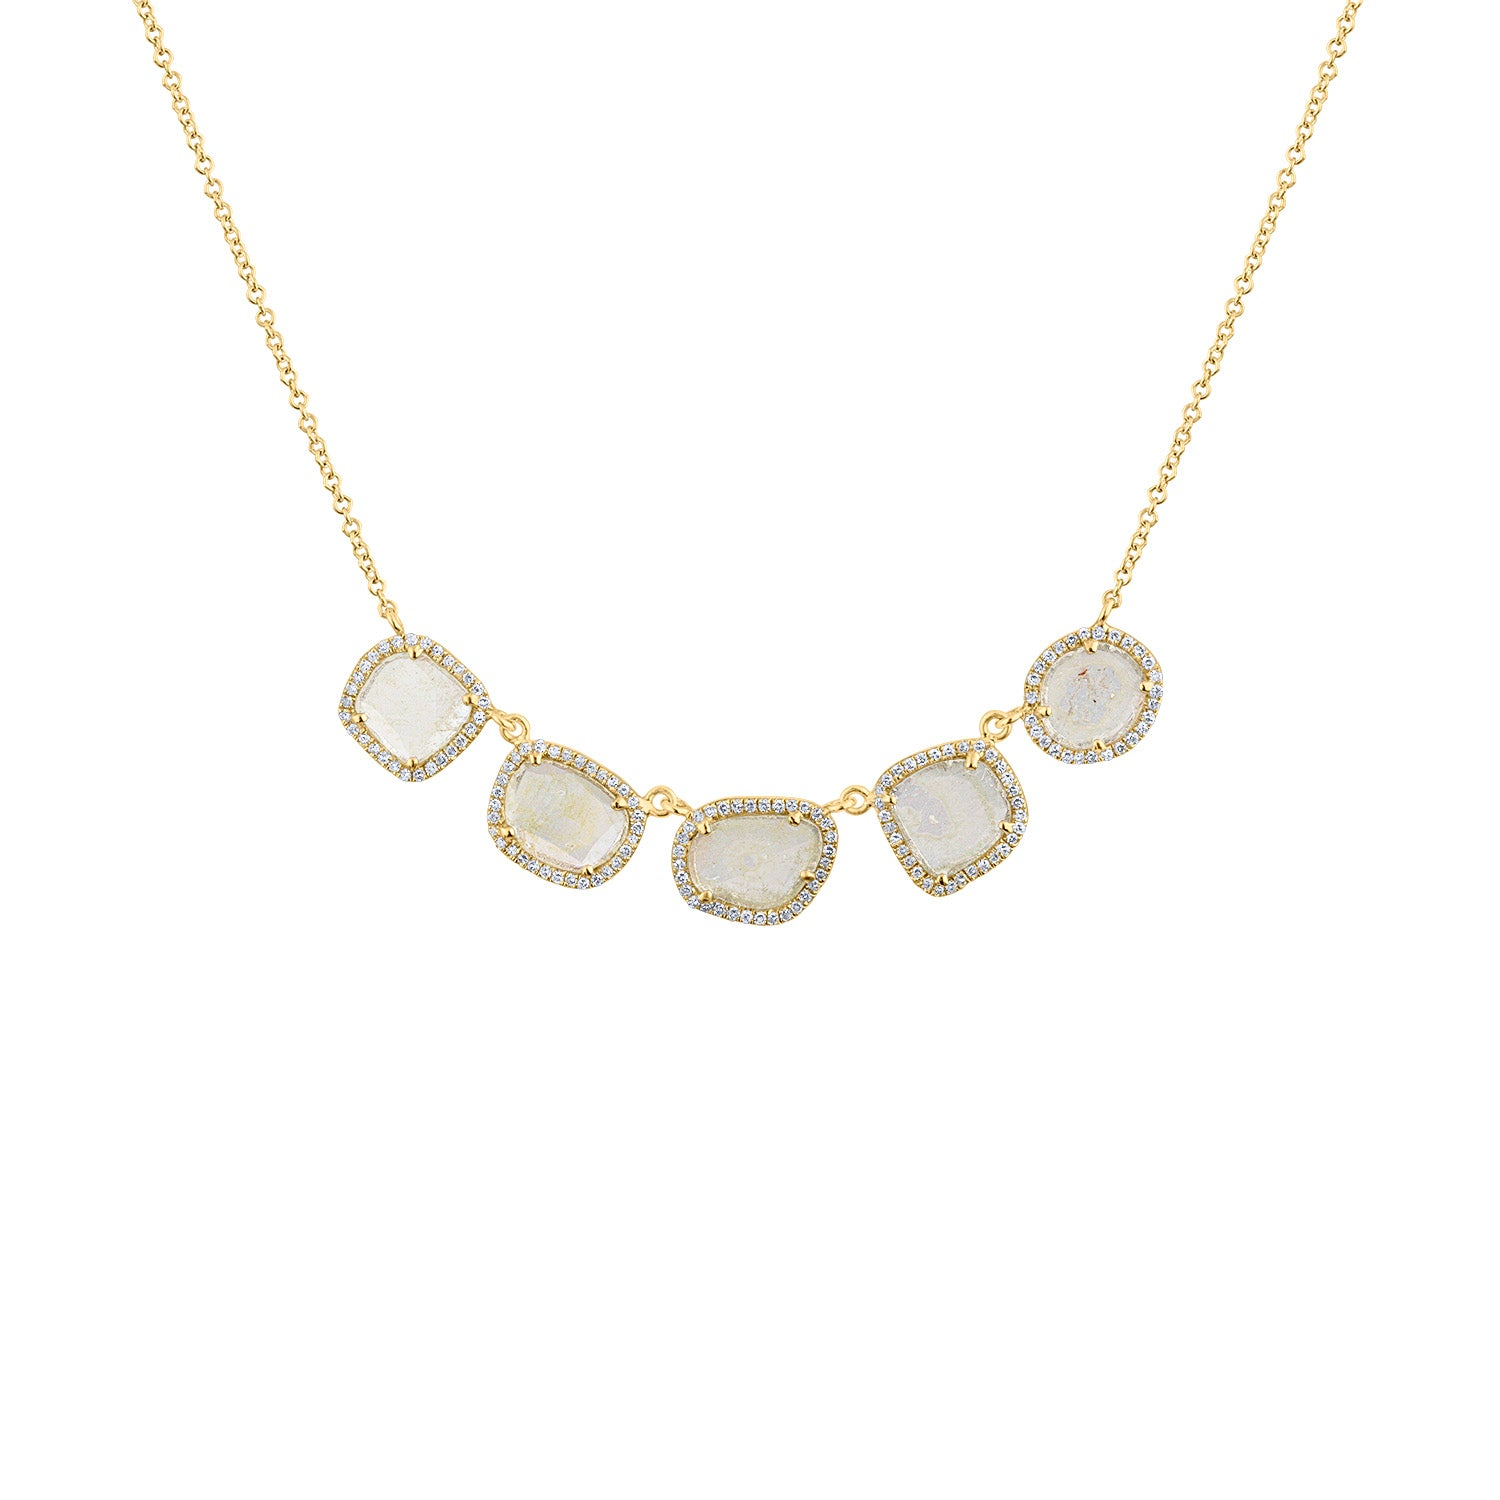 14KT GOLD DIAMOND 5 SLICE NECKLACE